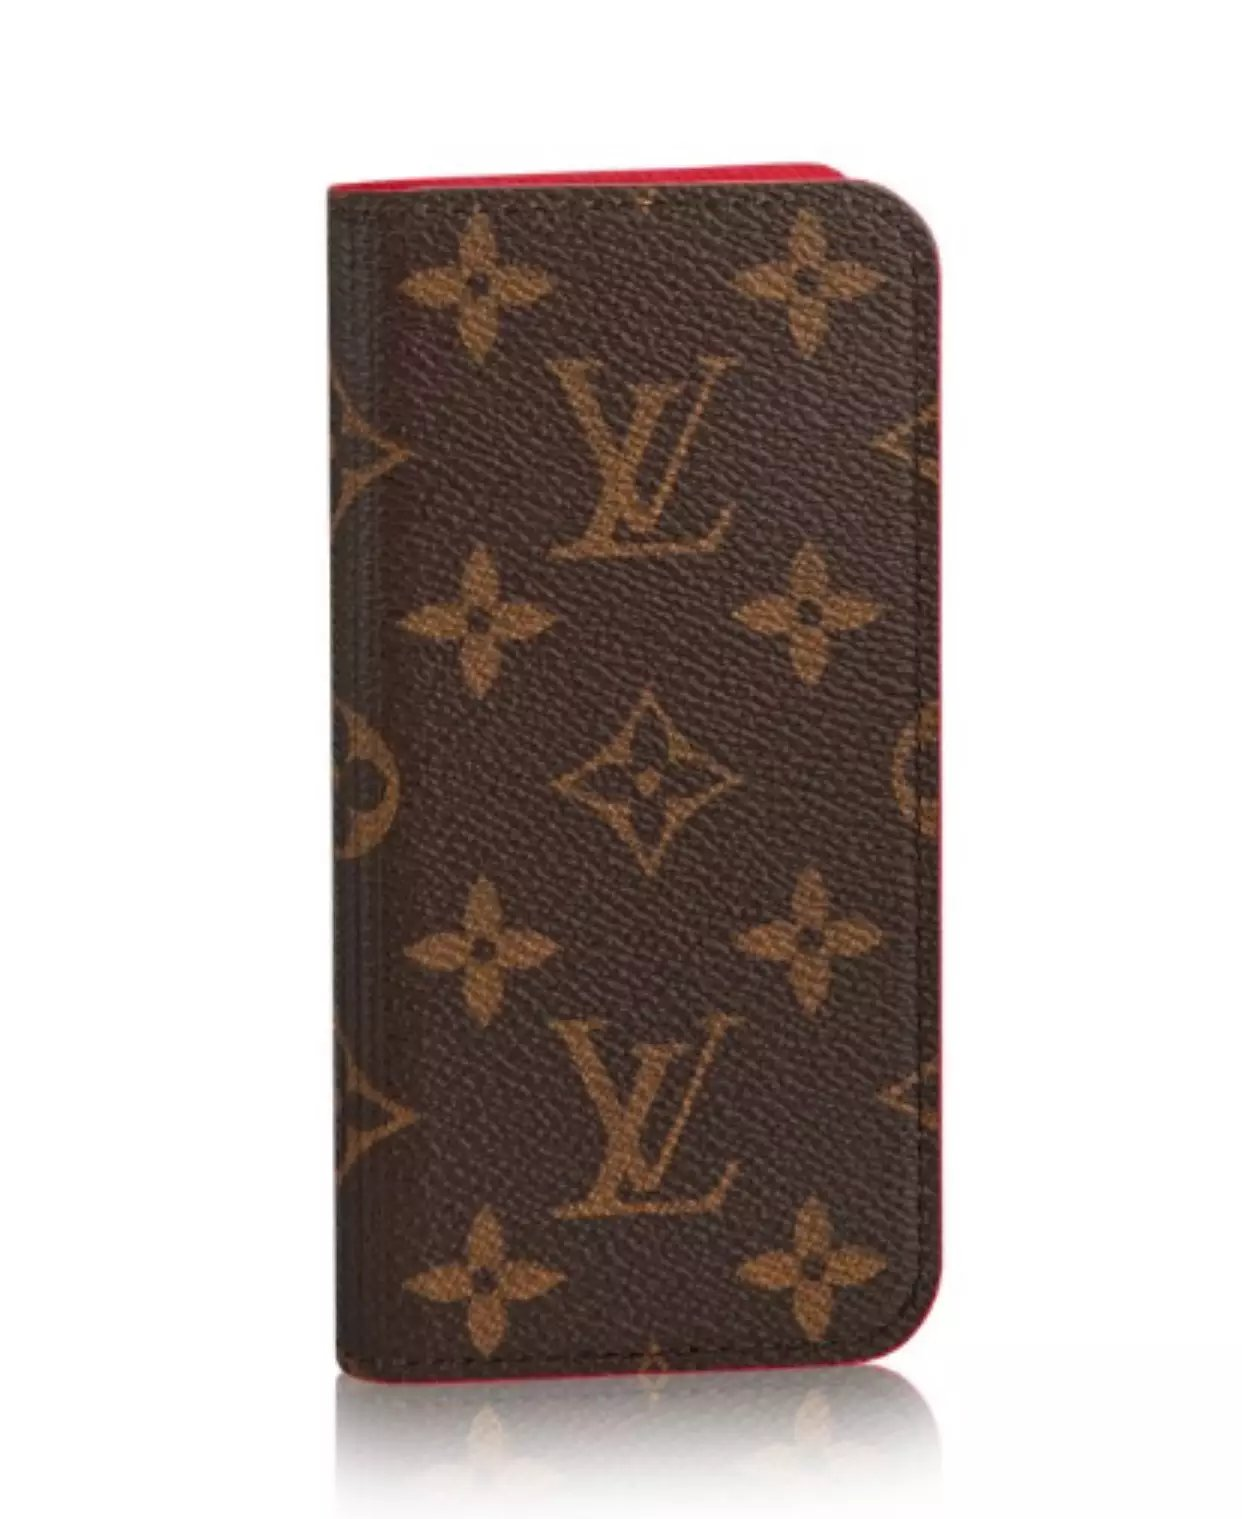 all iphone 8 Plus cases iphone 8 Plus covers online Louis Vuitton iphone 8 Plus case online phone case store where to buy mophie cases popular iPhone 8 Plus cases best cover iPhone 8 Plus make my own iPhone 8 Plus case juice pack iphone 8 Plus